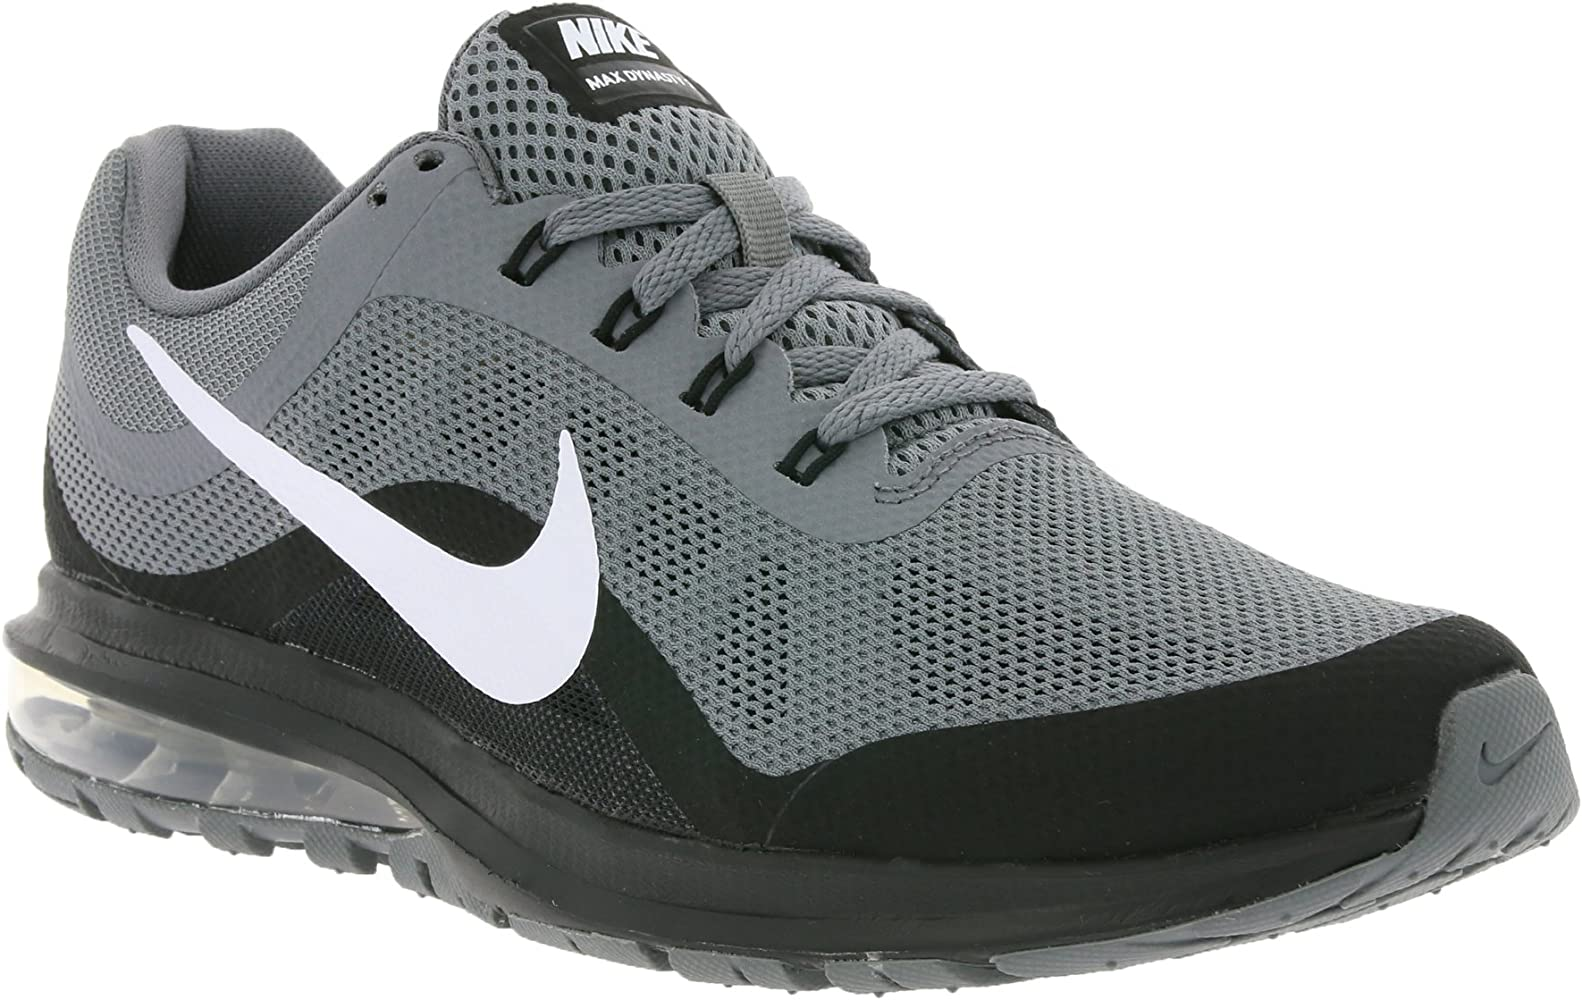 Nike Air Max Dynasty 2 Men's Running Training Shoes Cool Grey 852430 006 New